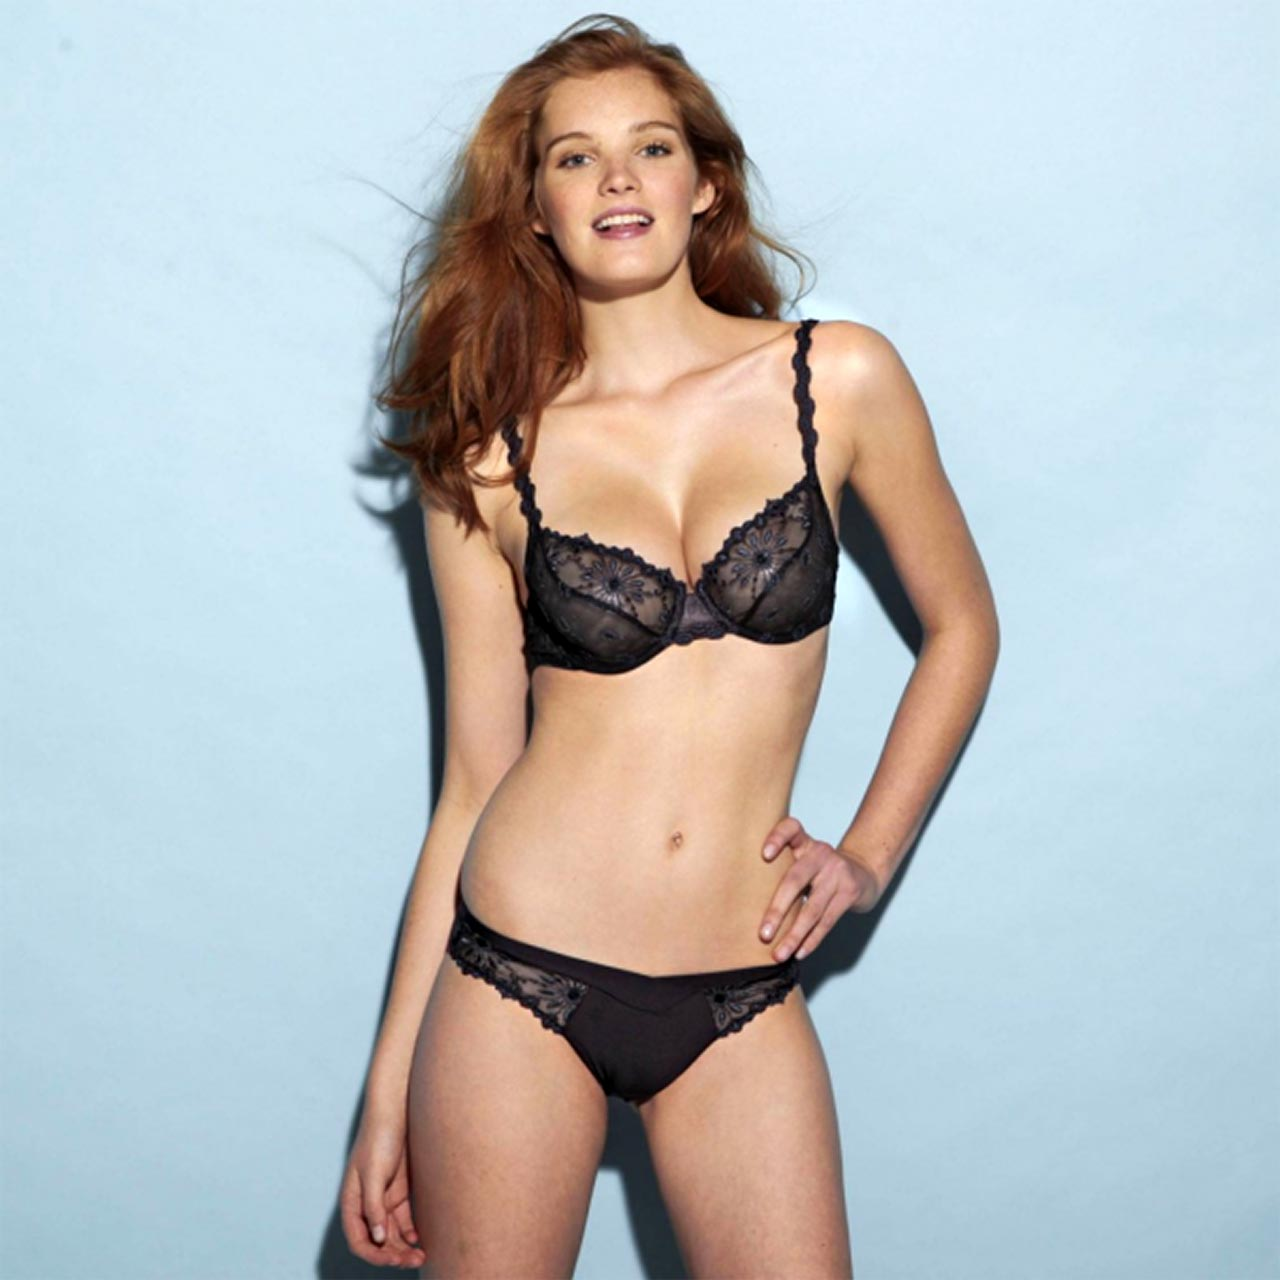 Pussy Alexina Graham nudes (75 photo), Tits, Hot, Instagram, braless 2020